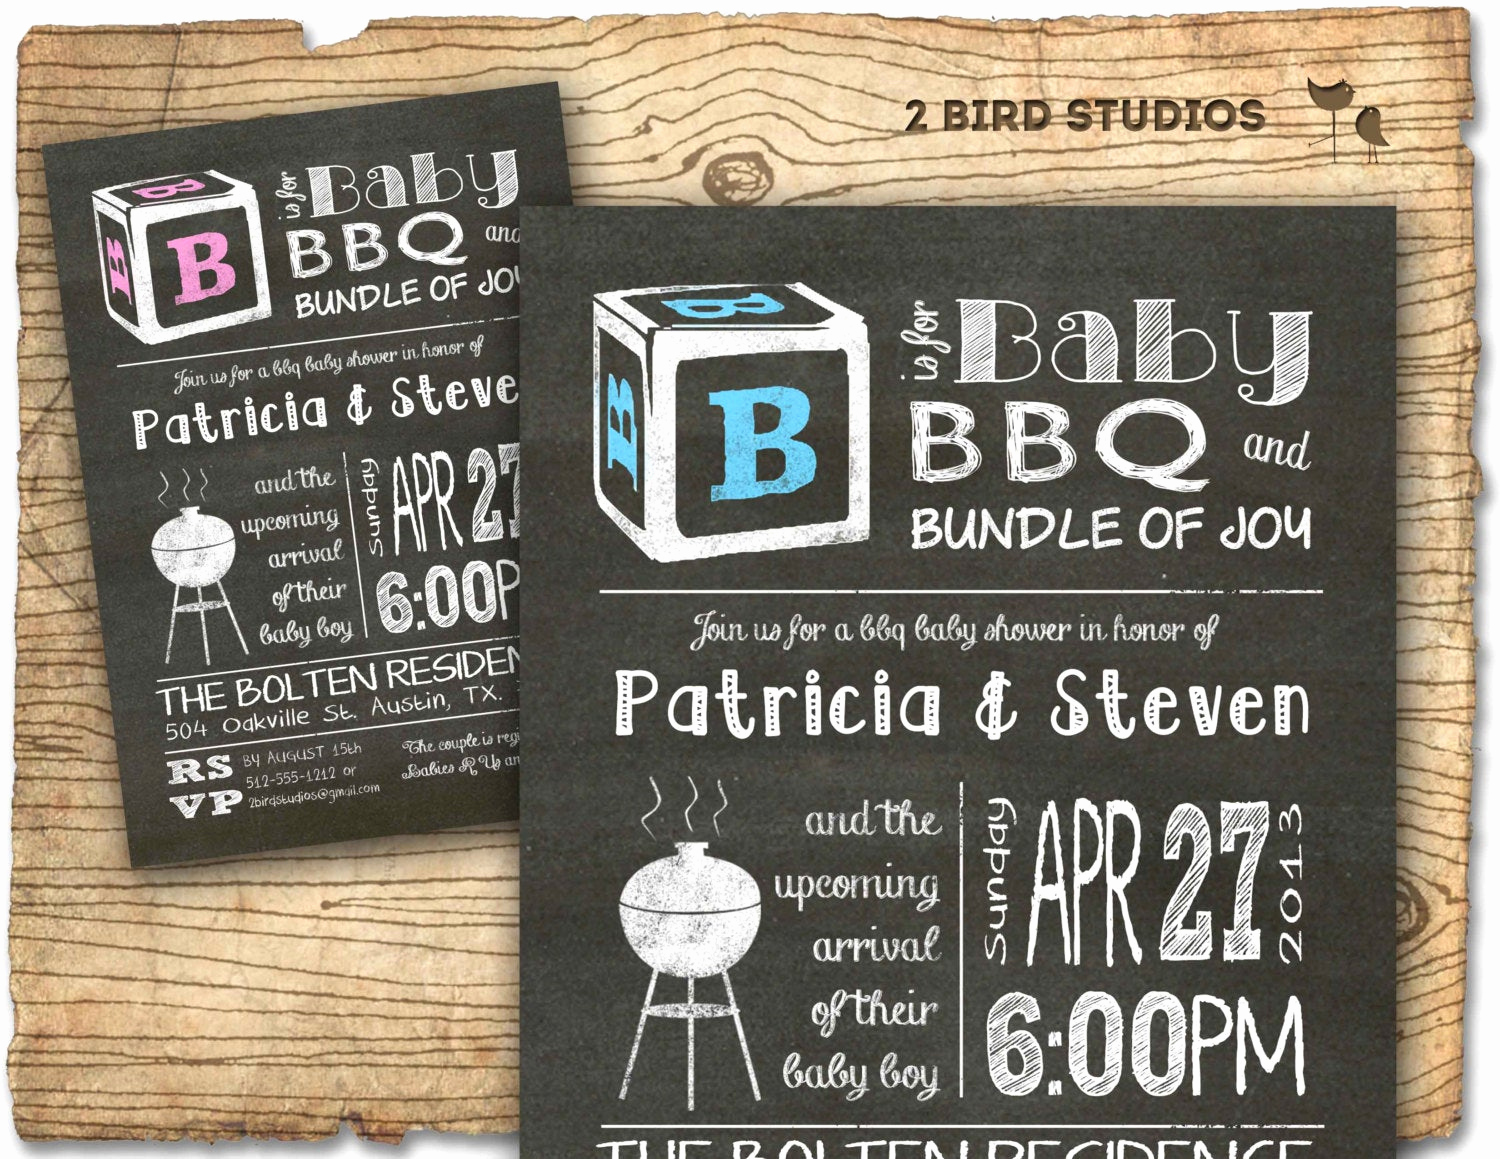 Coed Baby Shower Invitation Ideas Best Of Baby Shower Invitation Coed Baby Shower or for Couples Bbq